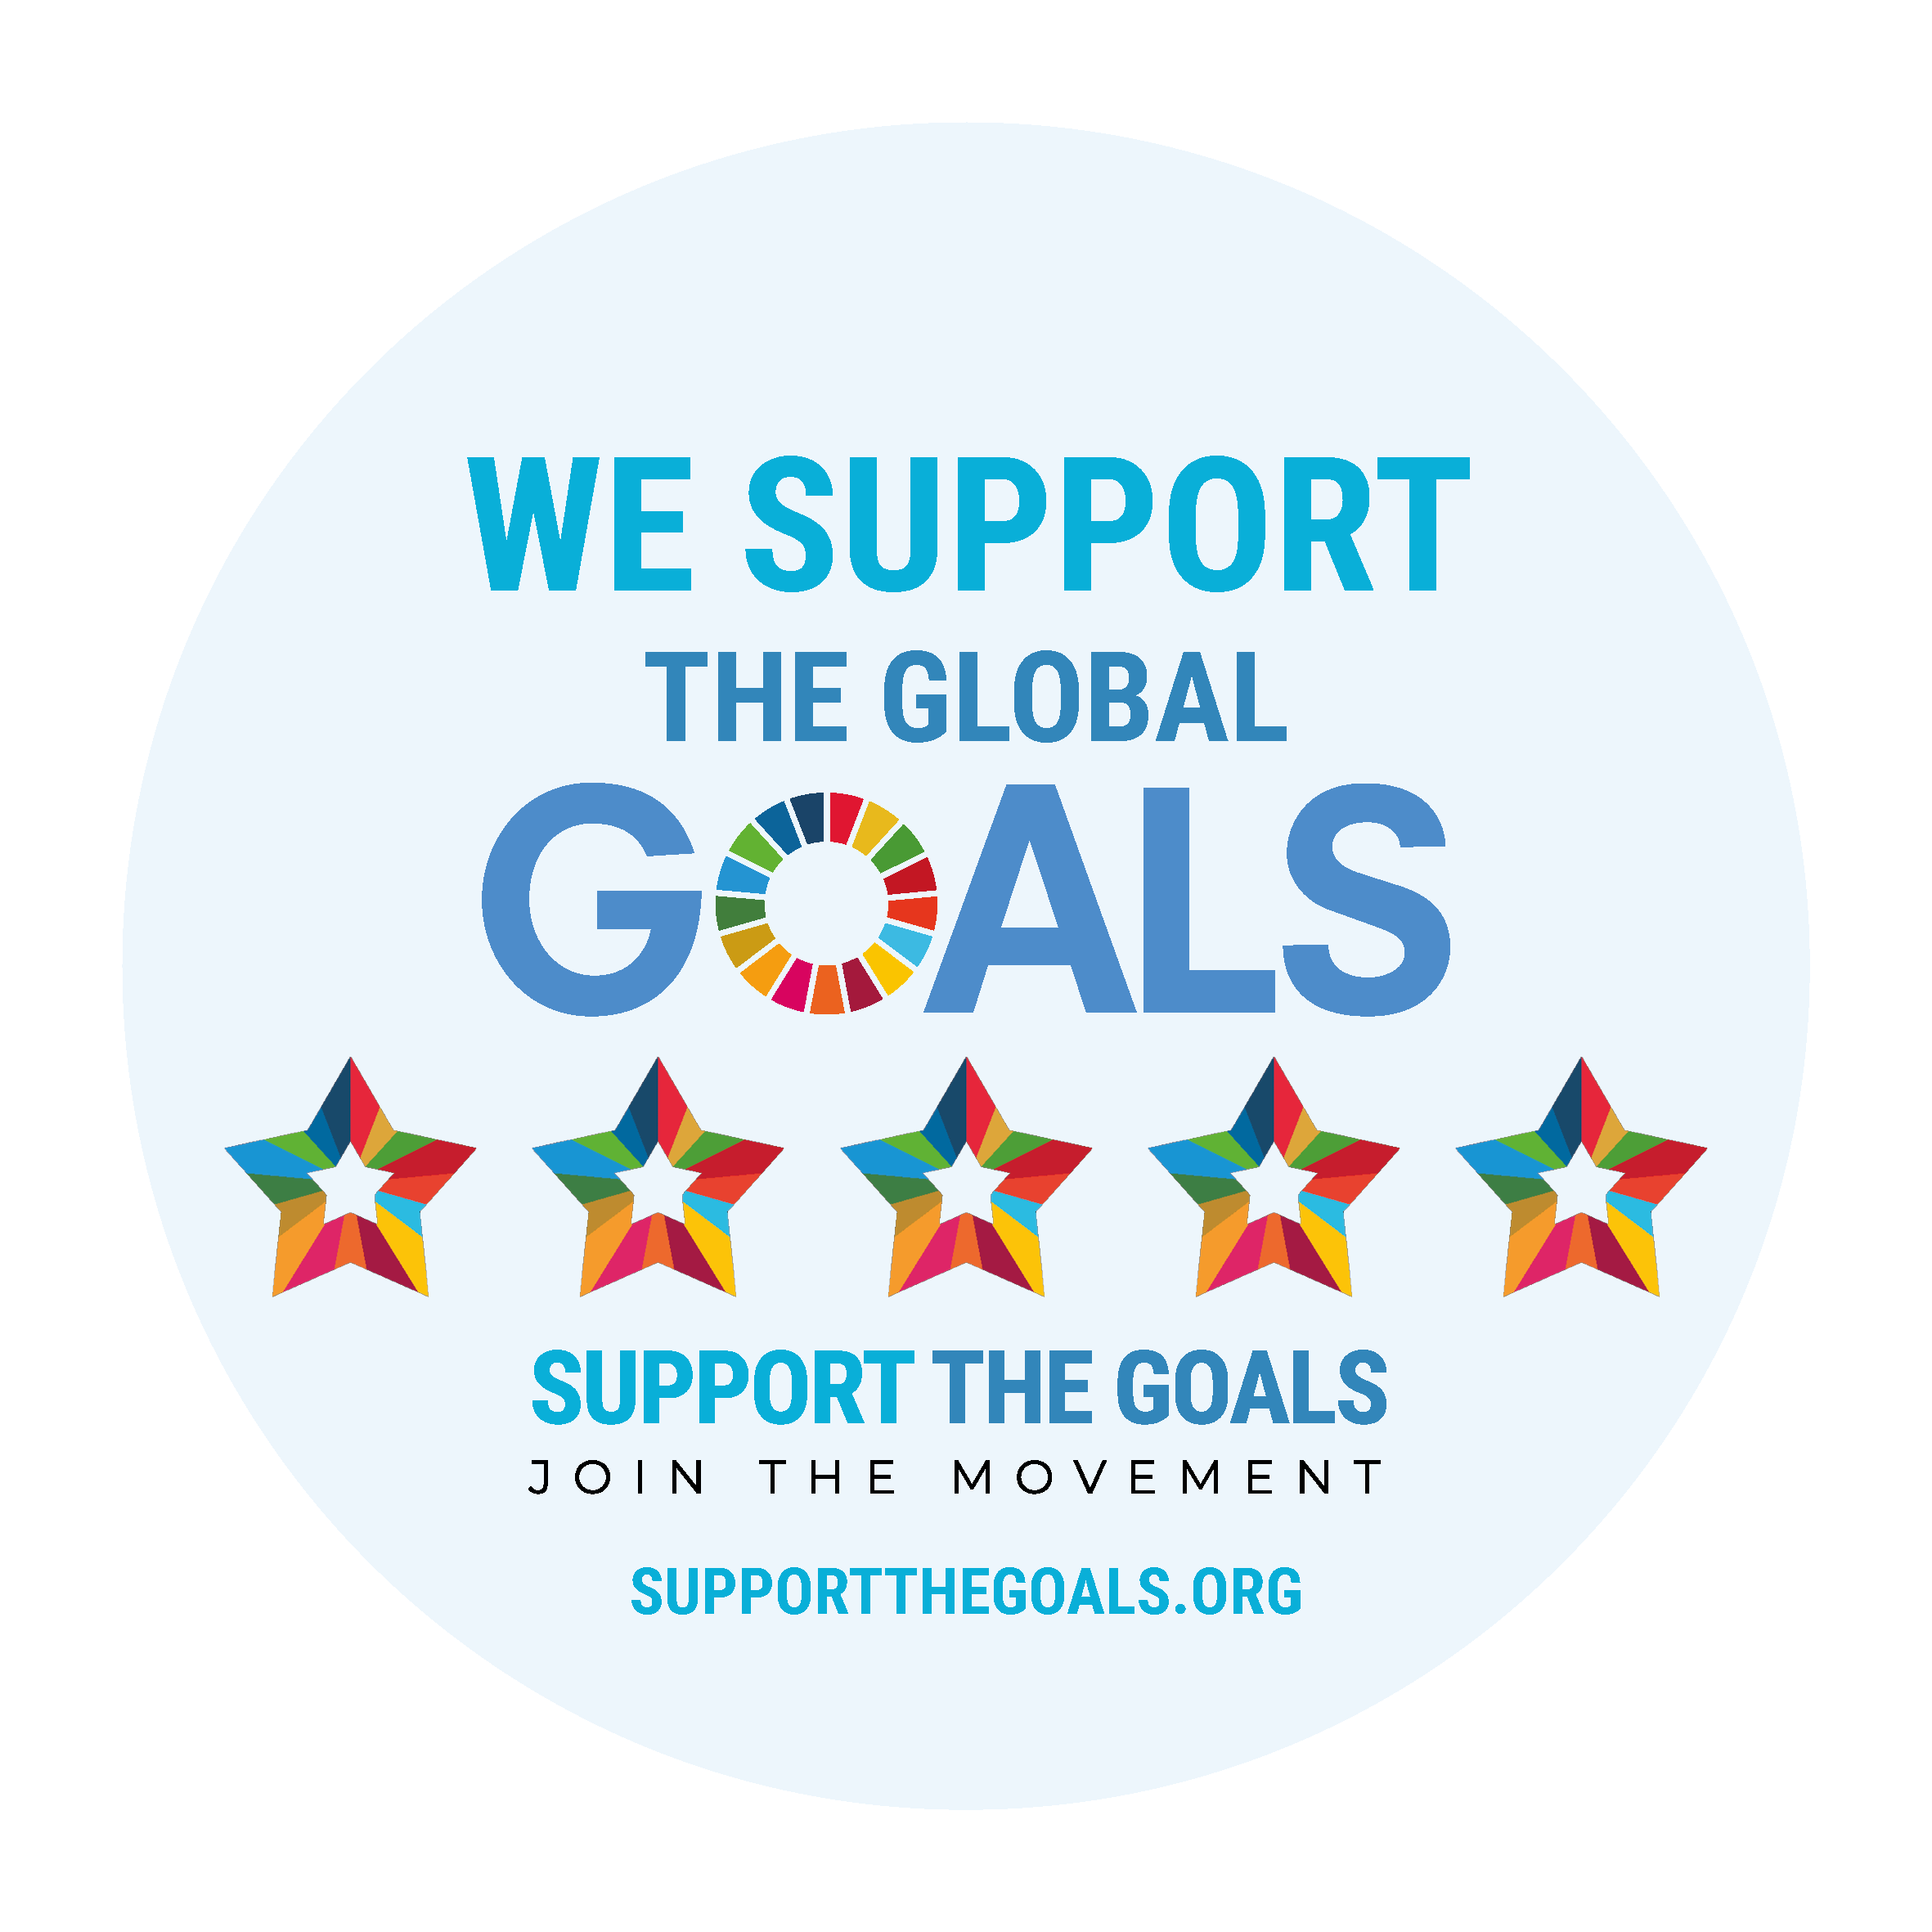 supporting the global goals